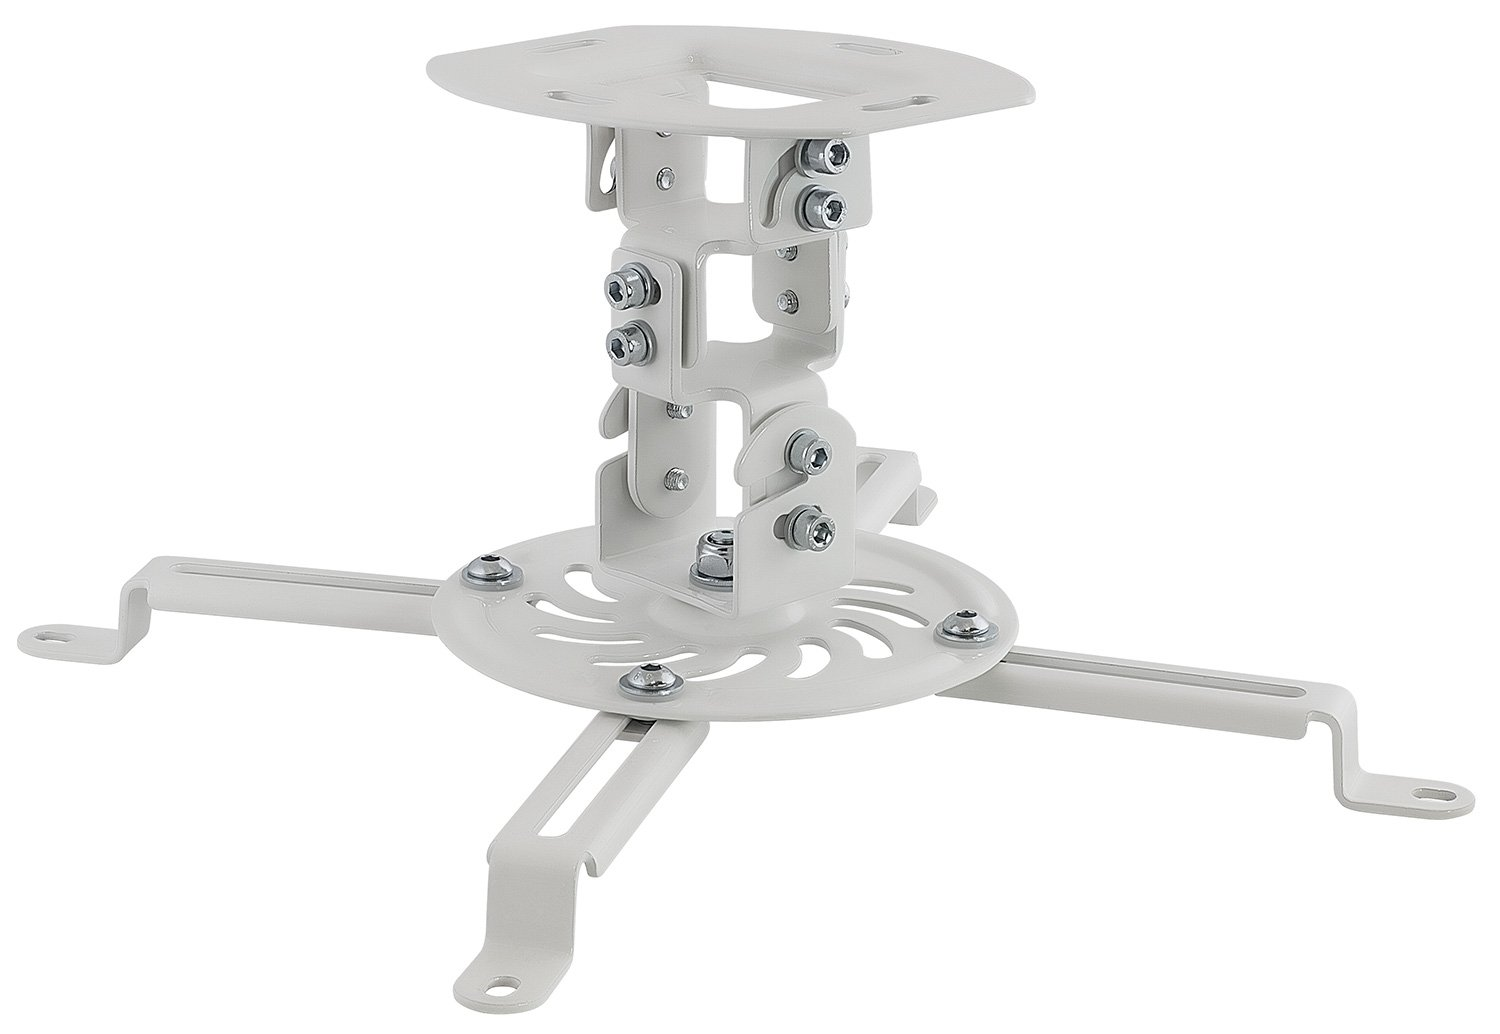 Mount-It! Ceiling Projector Mount Height Adjustable Universal Stand Fits Epson Optoma Benq Viewsonic Projectors, 30 Lbs Capacity (Short)